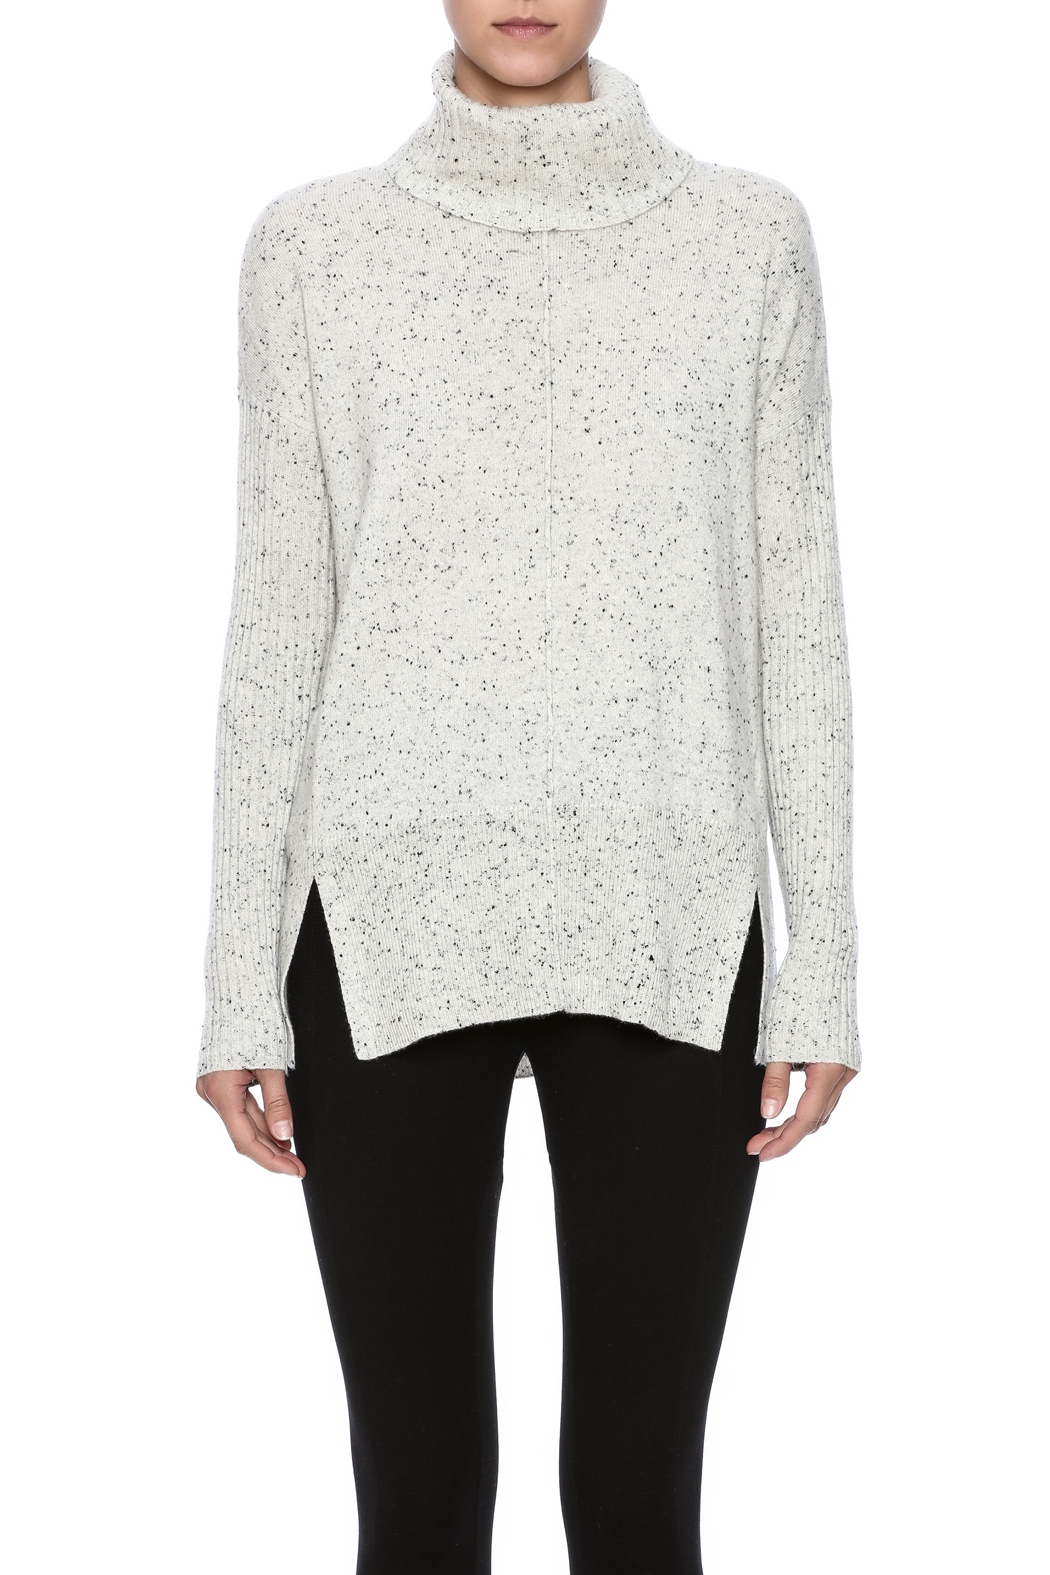 Tyler Boe Cashmere Tunic Sweater from New York by Scandia House ...